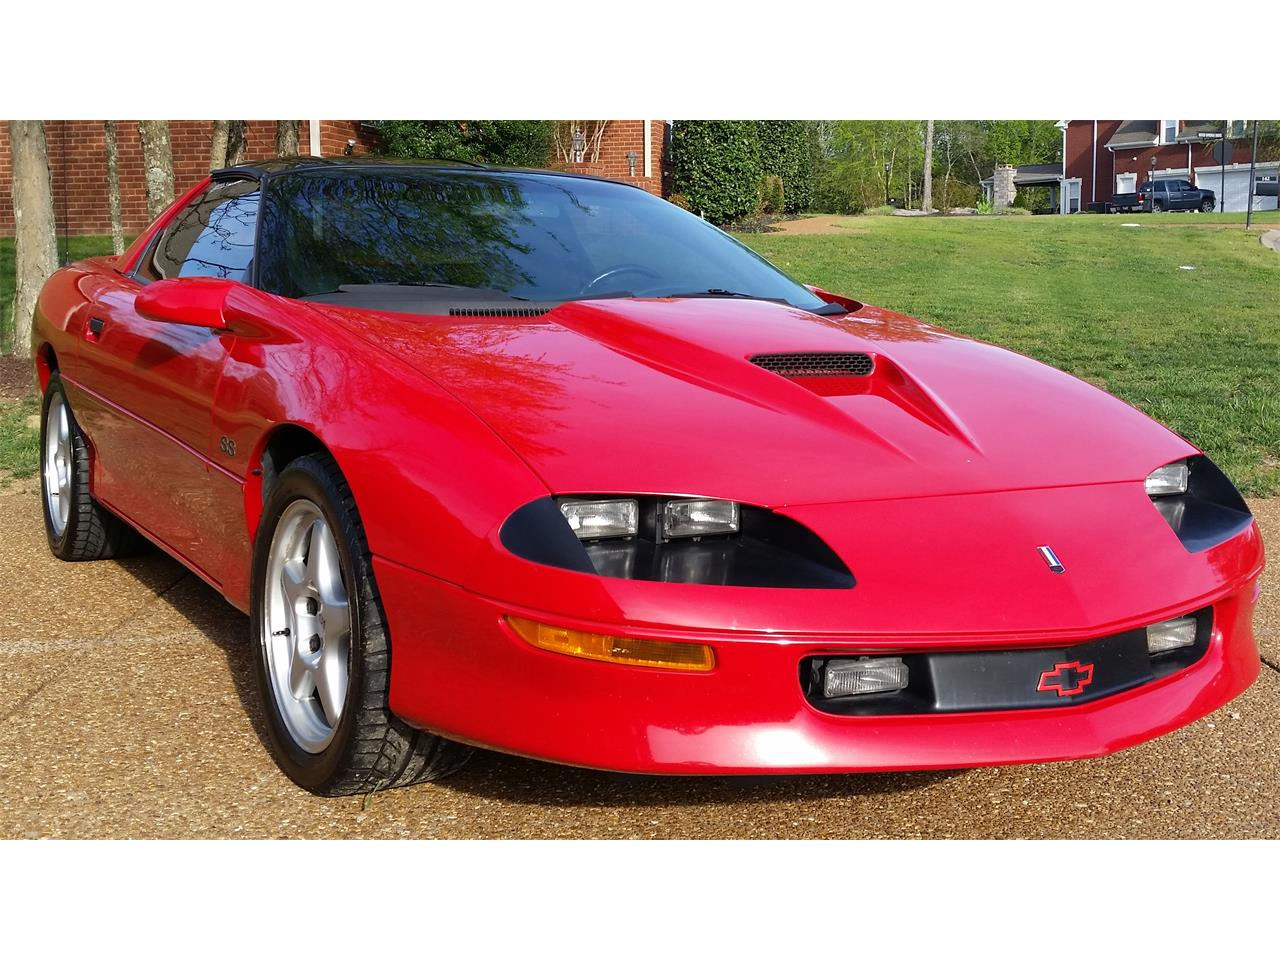 Large Picture of 1997 Chevrolet Camaro SS Z28 - $13,500.00 Offered by a Private Seller - KW6A